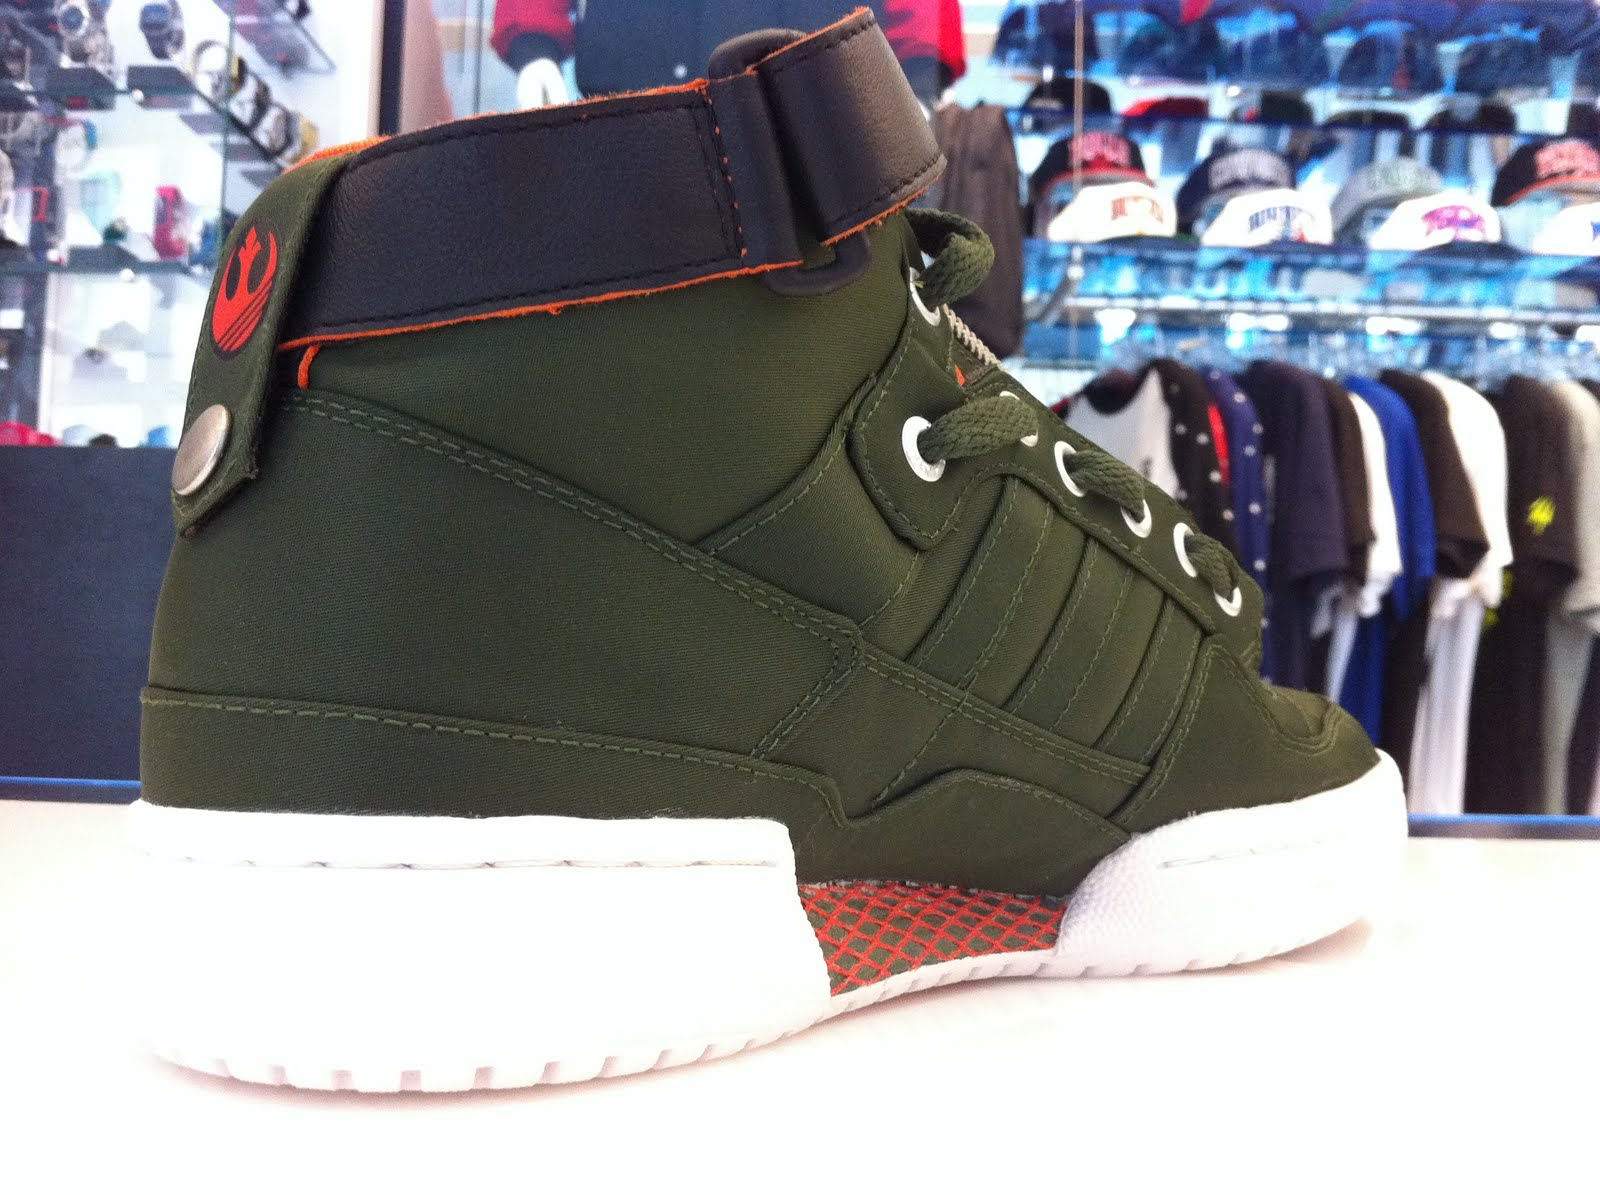 new styles 179dd 2632d ... Originals Forum Mid- Han solo. Adidas brand and the Star war series it  offers dosent stop, heres another release from the iconic character, Han  Solo